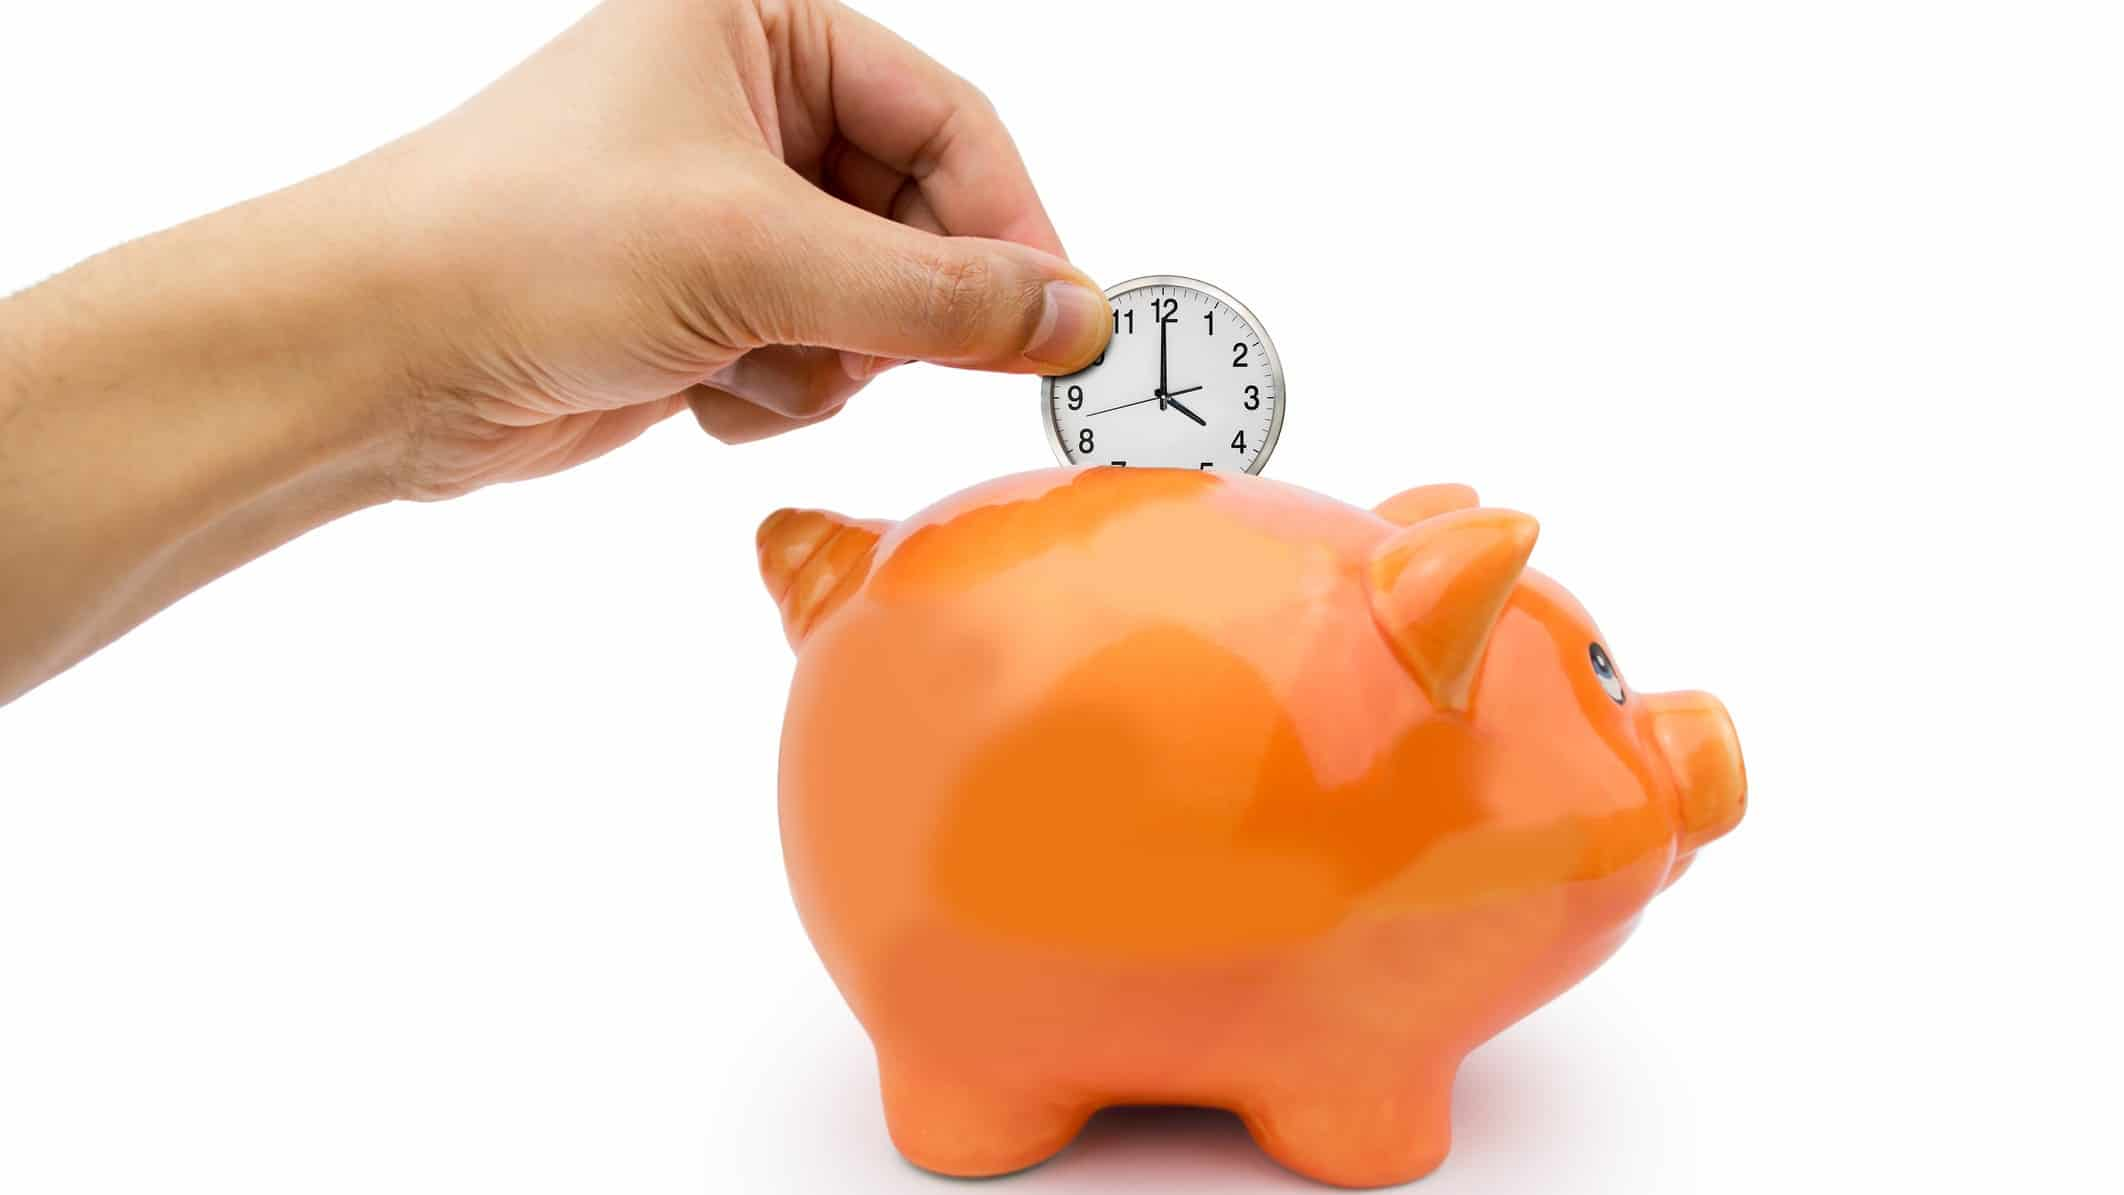 Sydney airport share price represented by hand placing a clock into a piggy bank